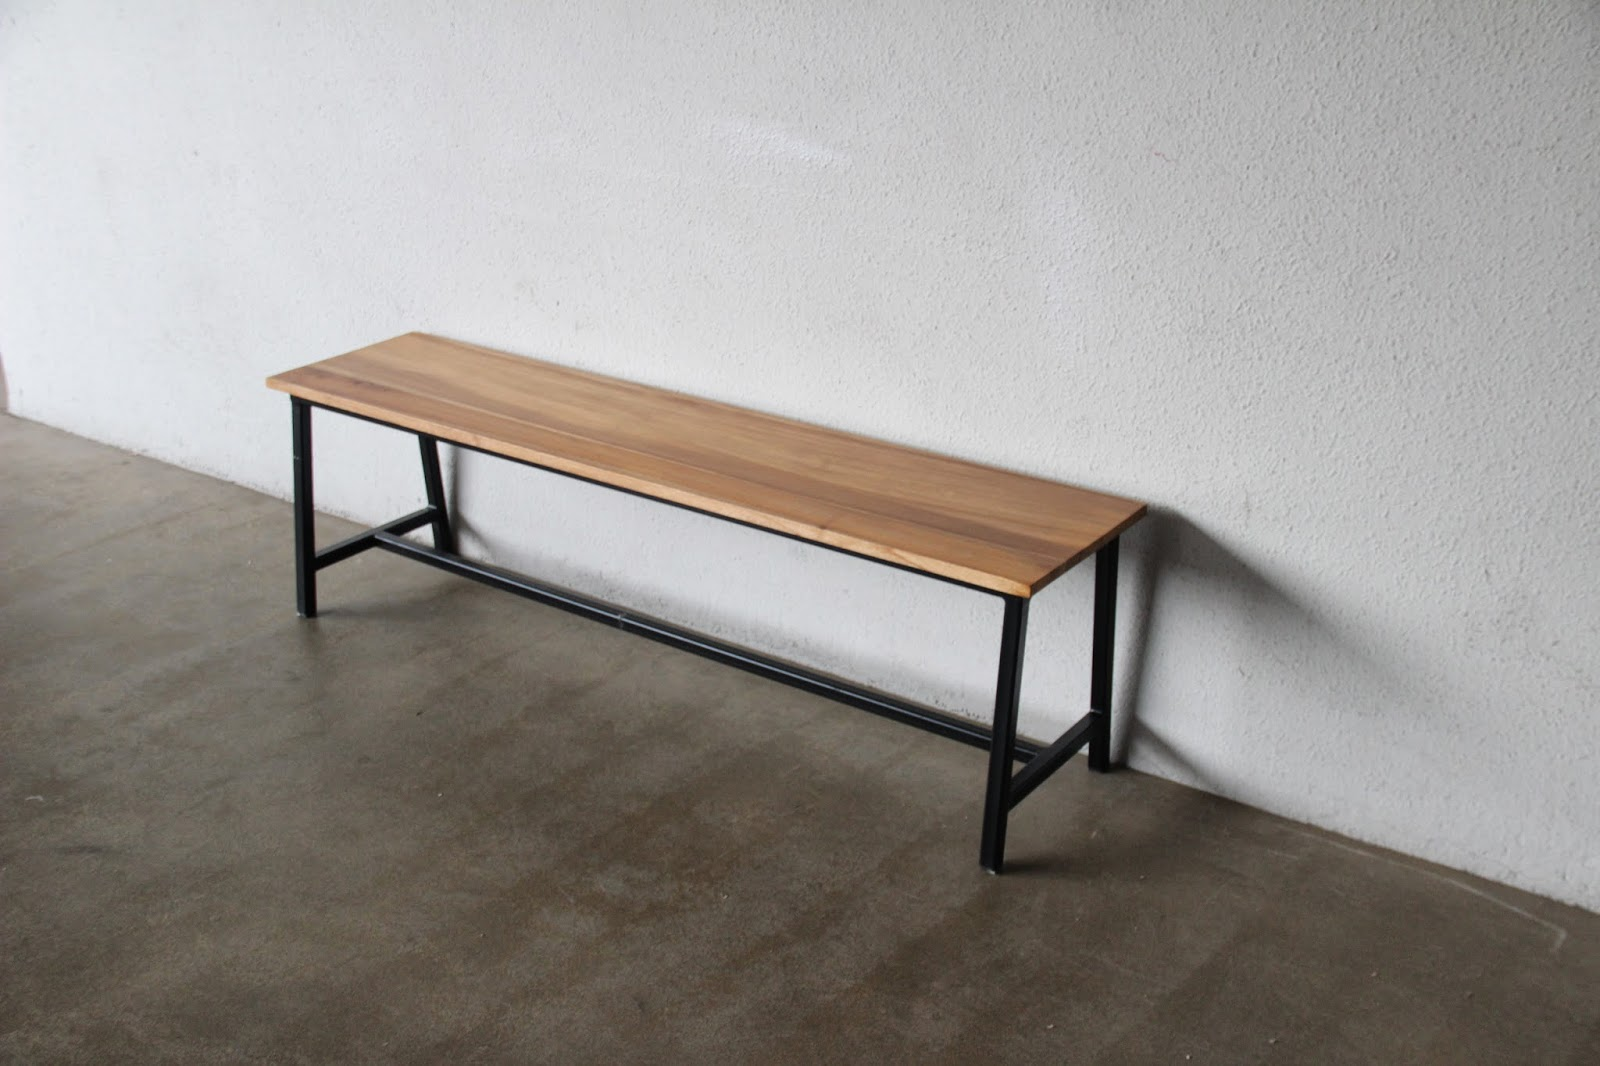 Industrial furniture as trendy as midcentury modern Furniture wooden legs